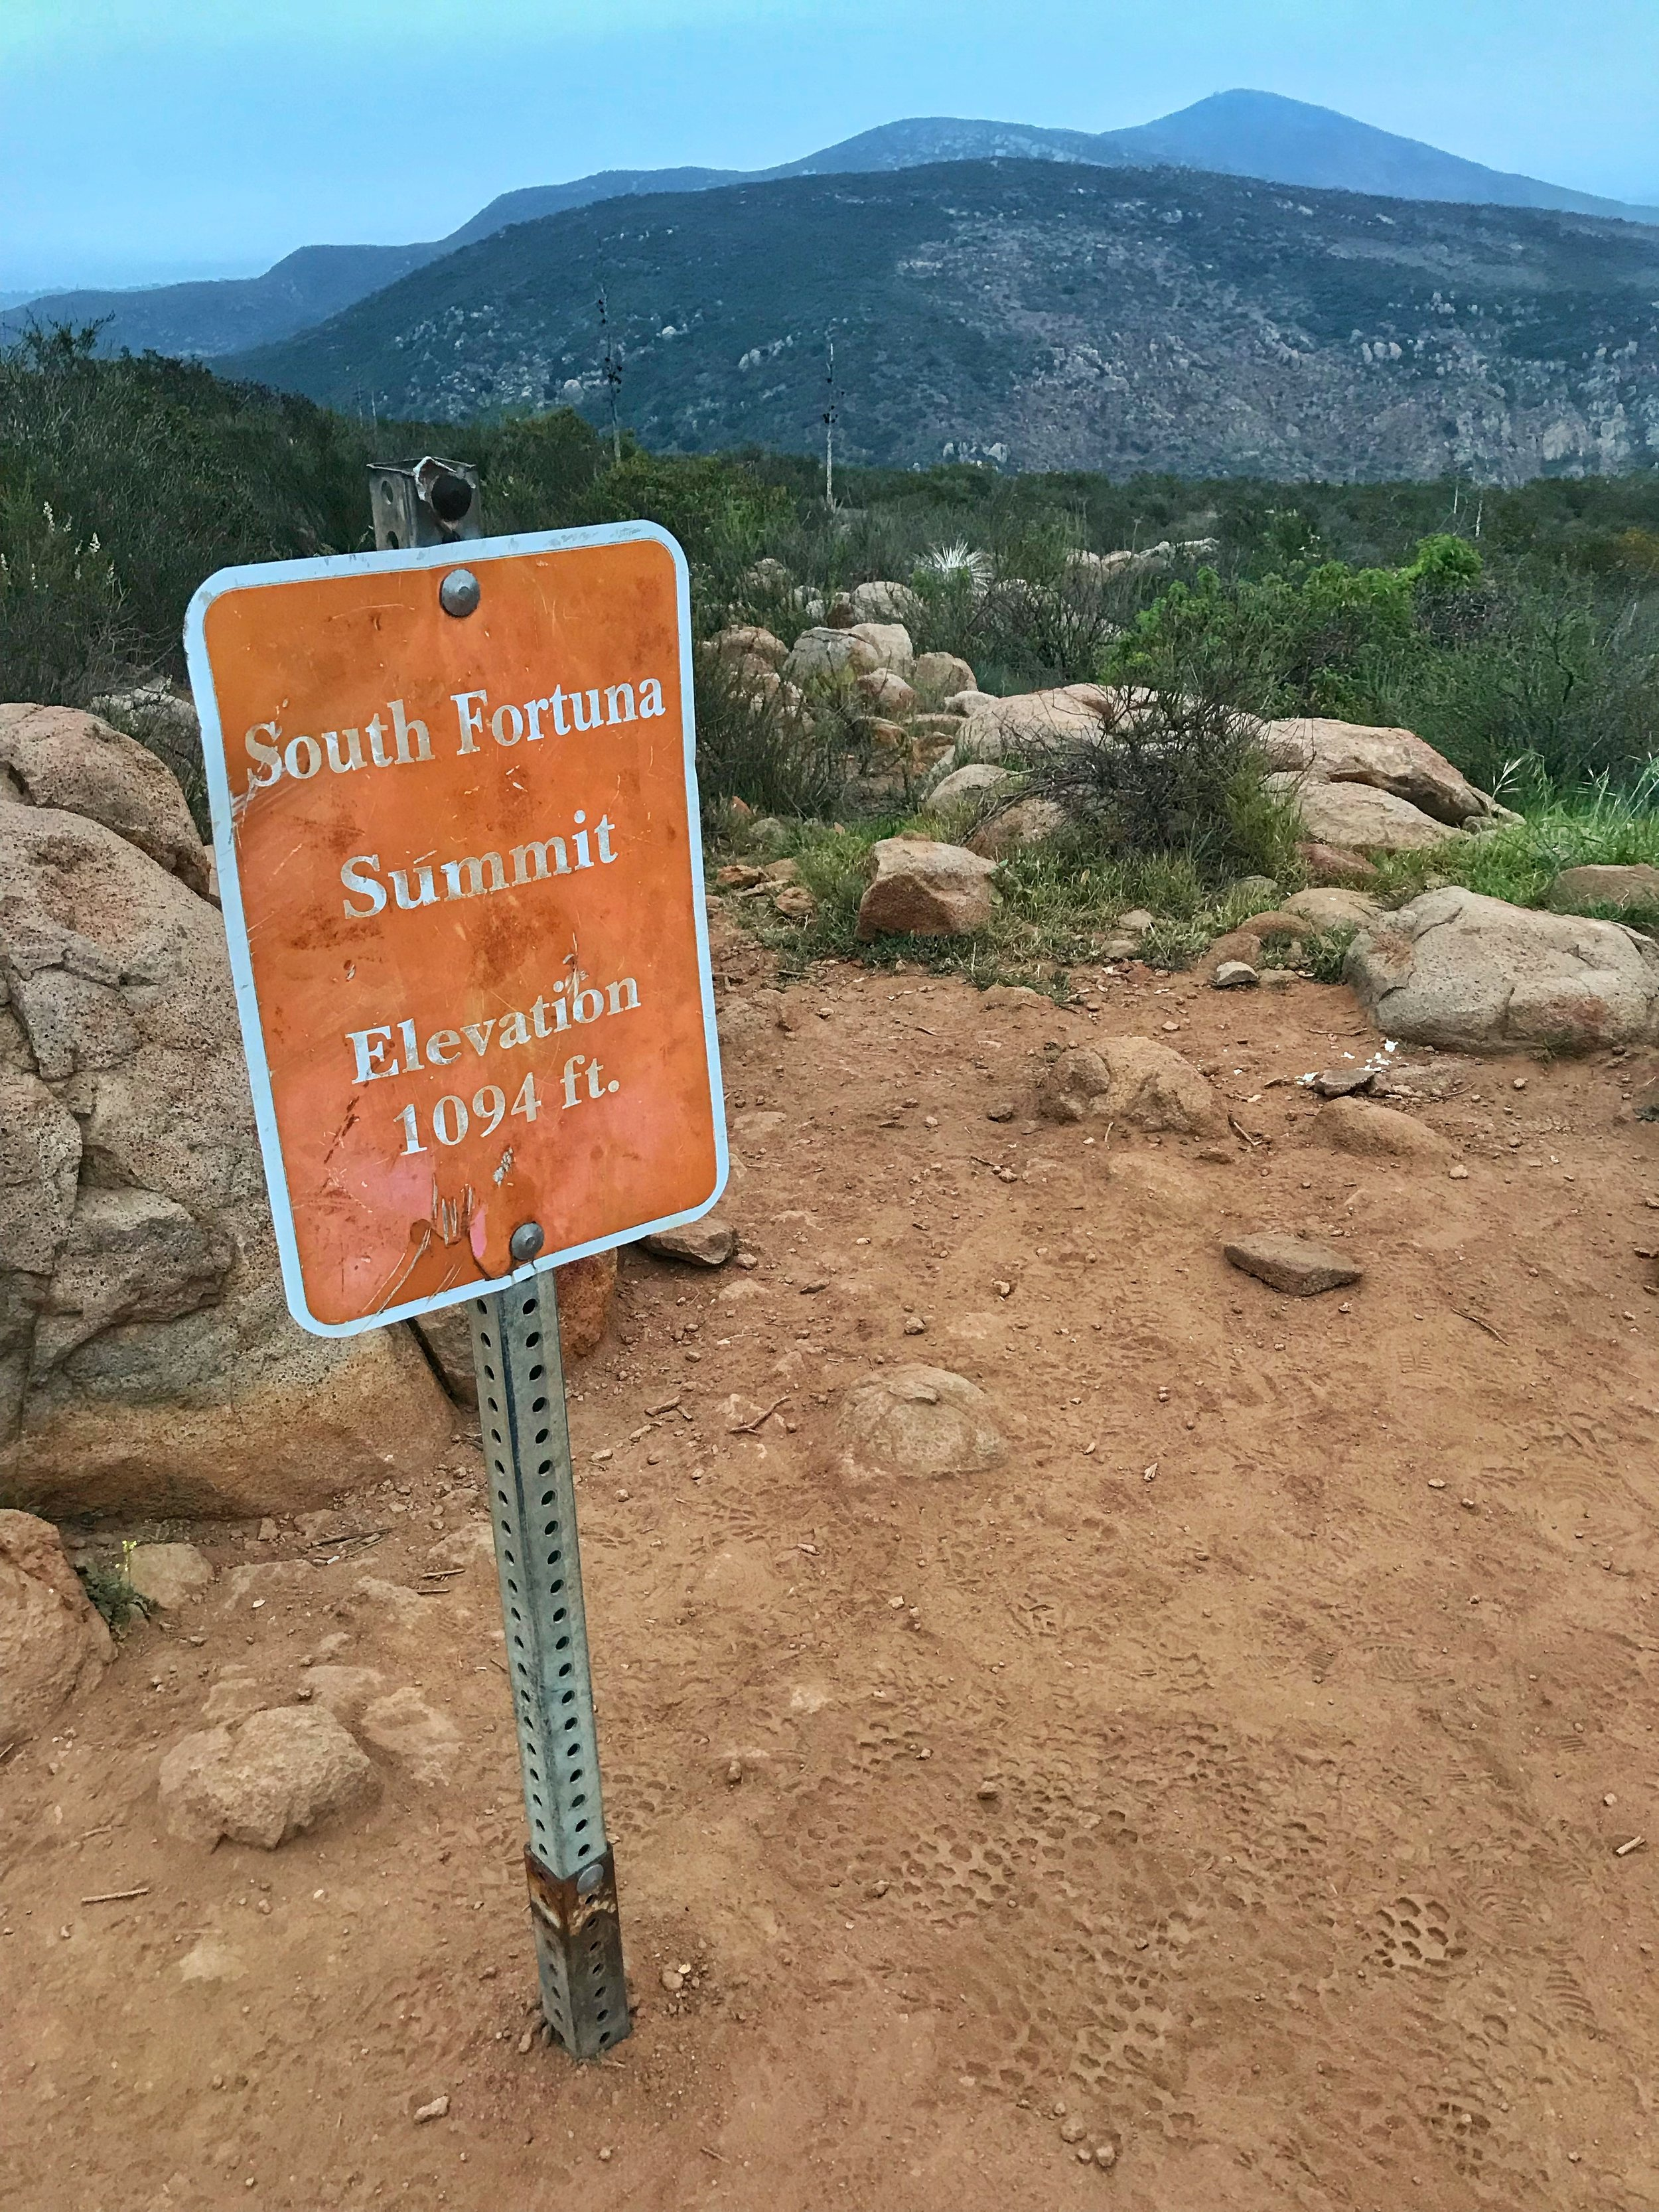 From the summit, hikers have great views of Pyles Peak and Cowles Mountain, among other areas in the county.